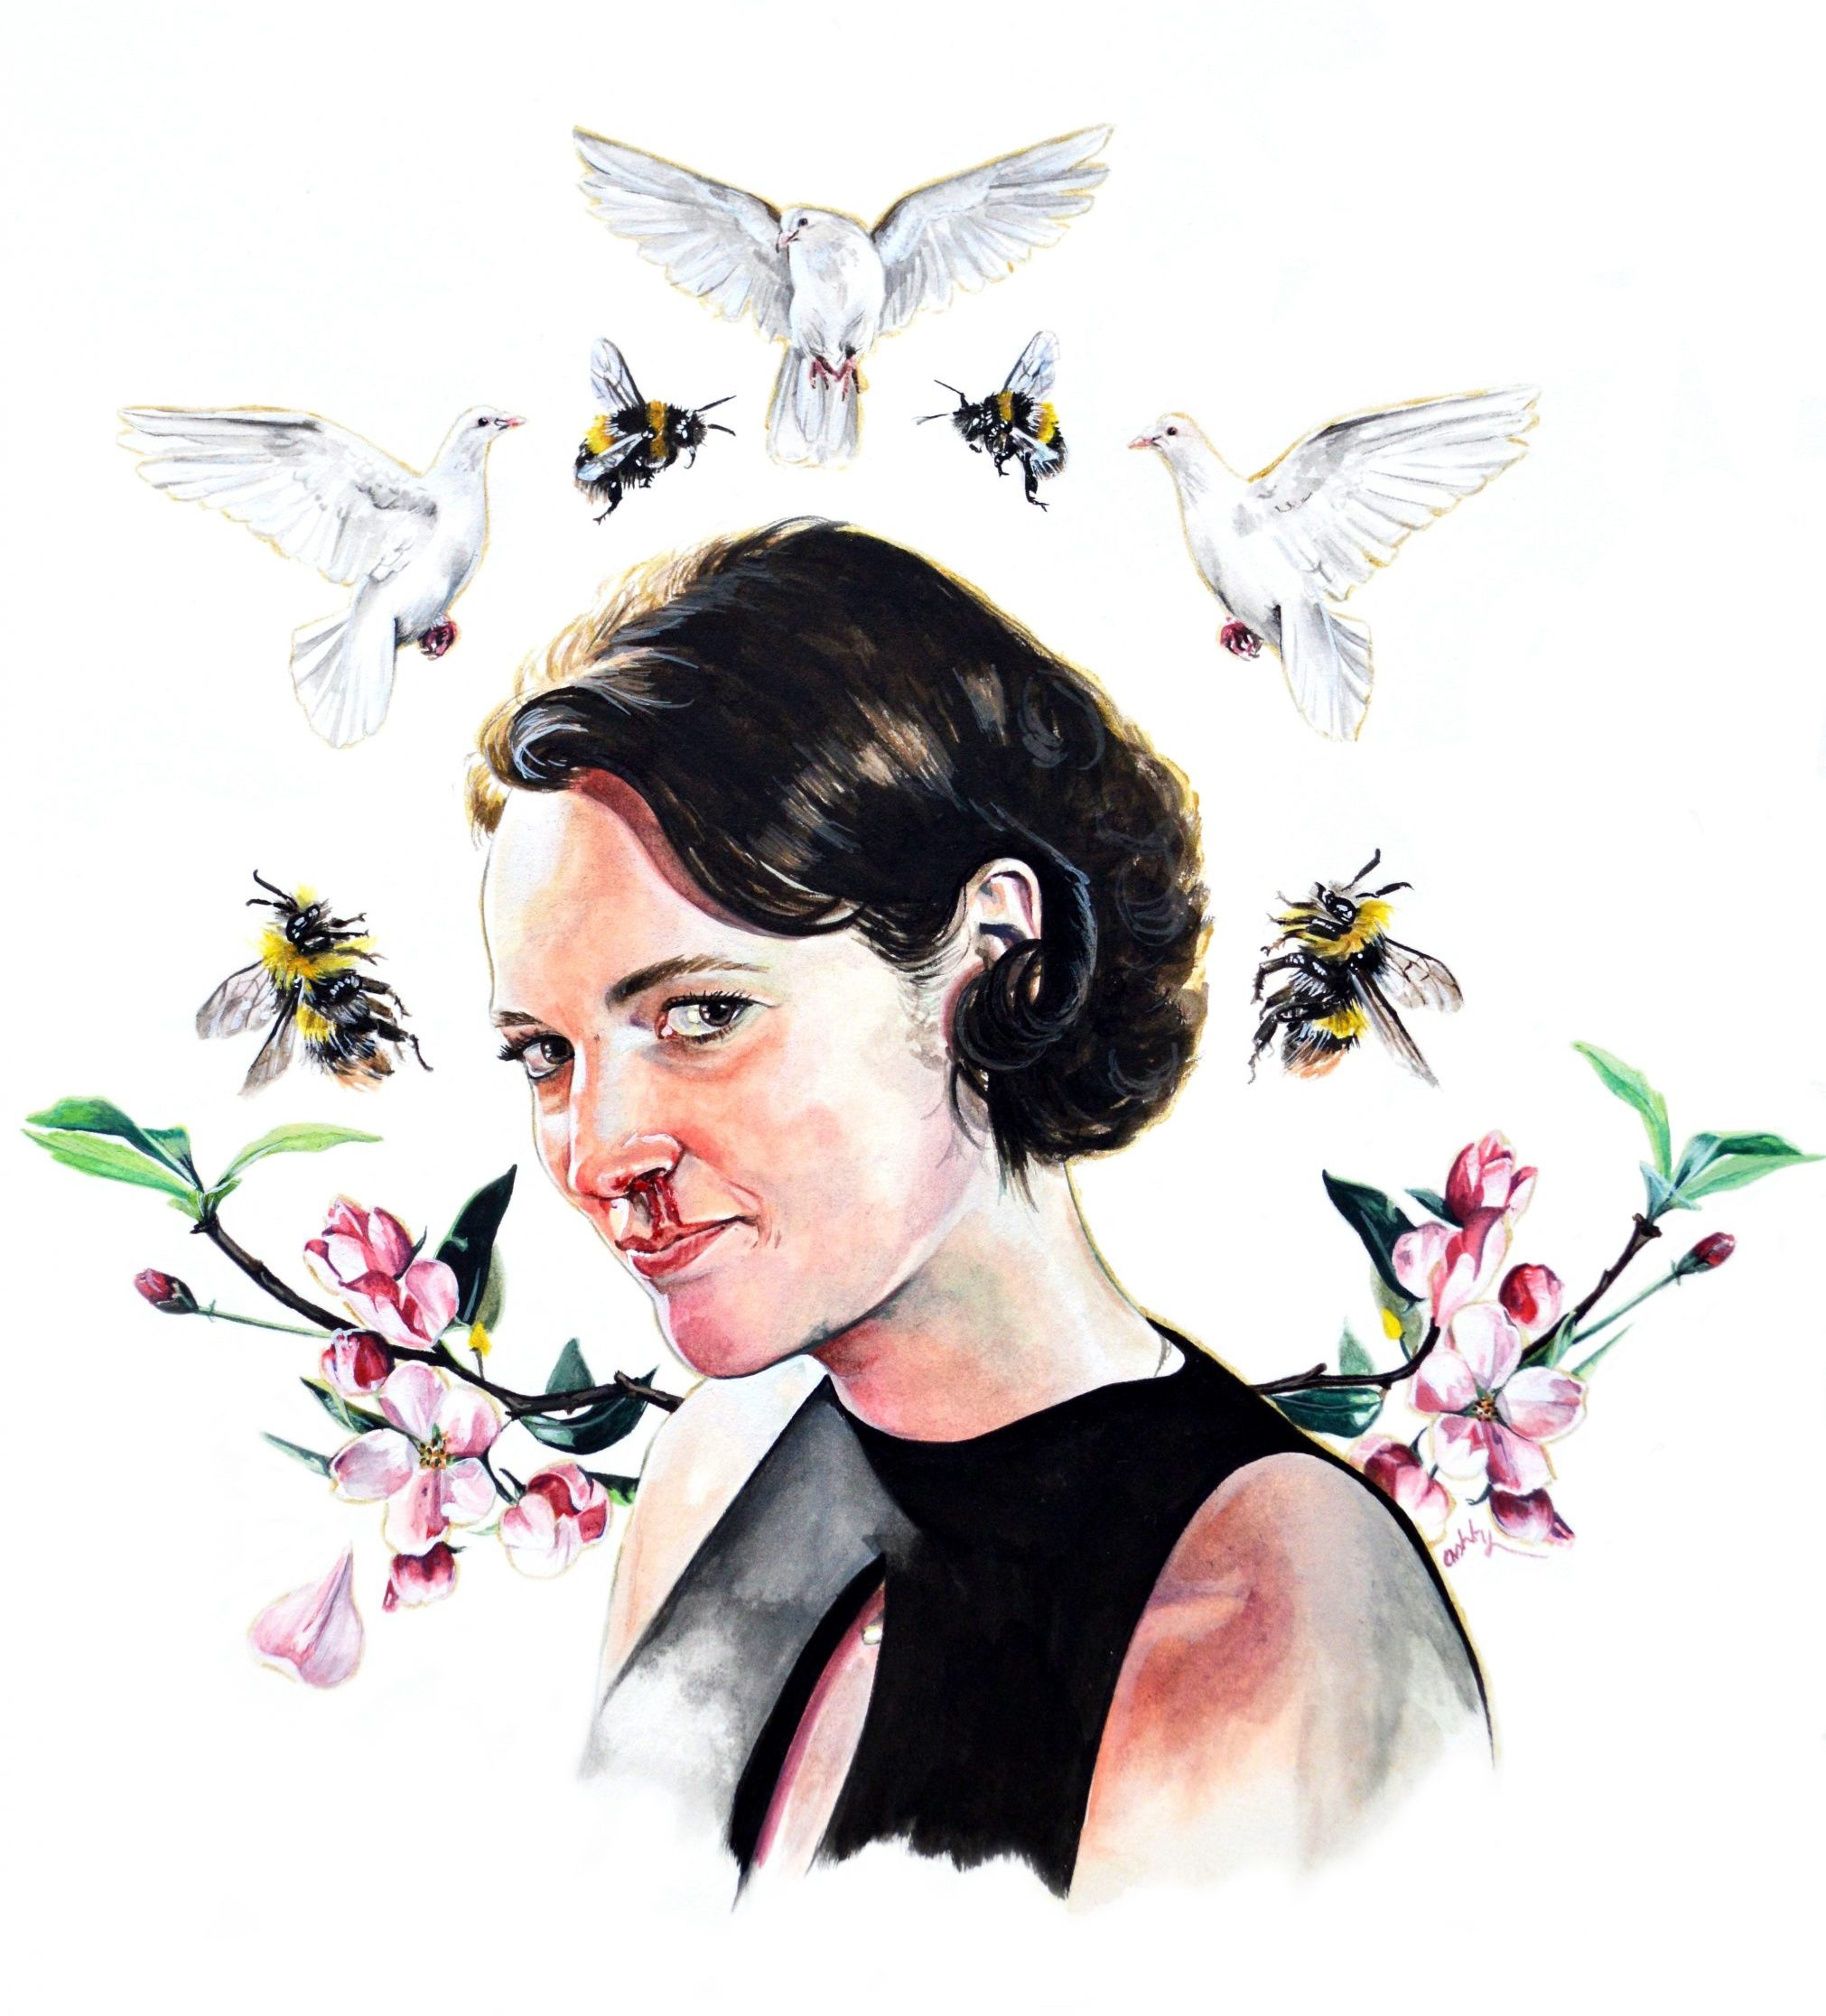 Fleabag | art by Brianna Ashby